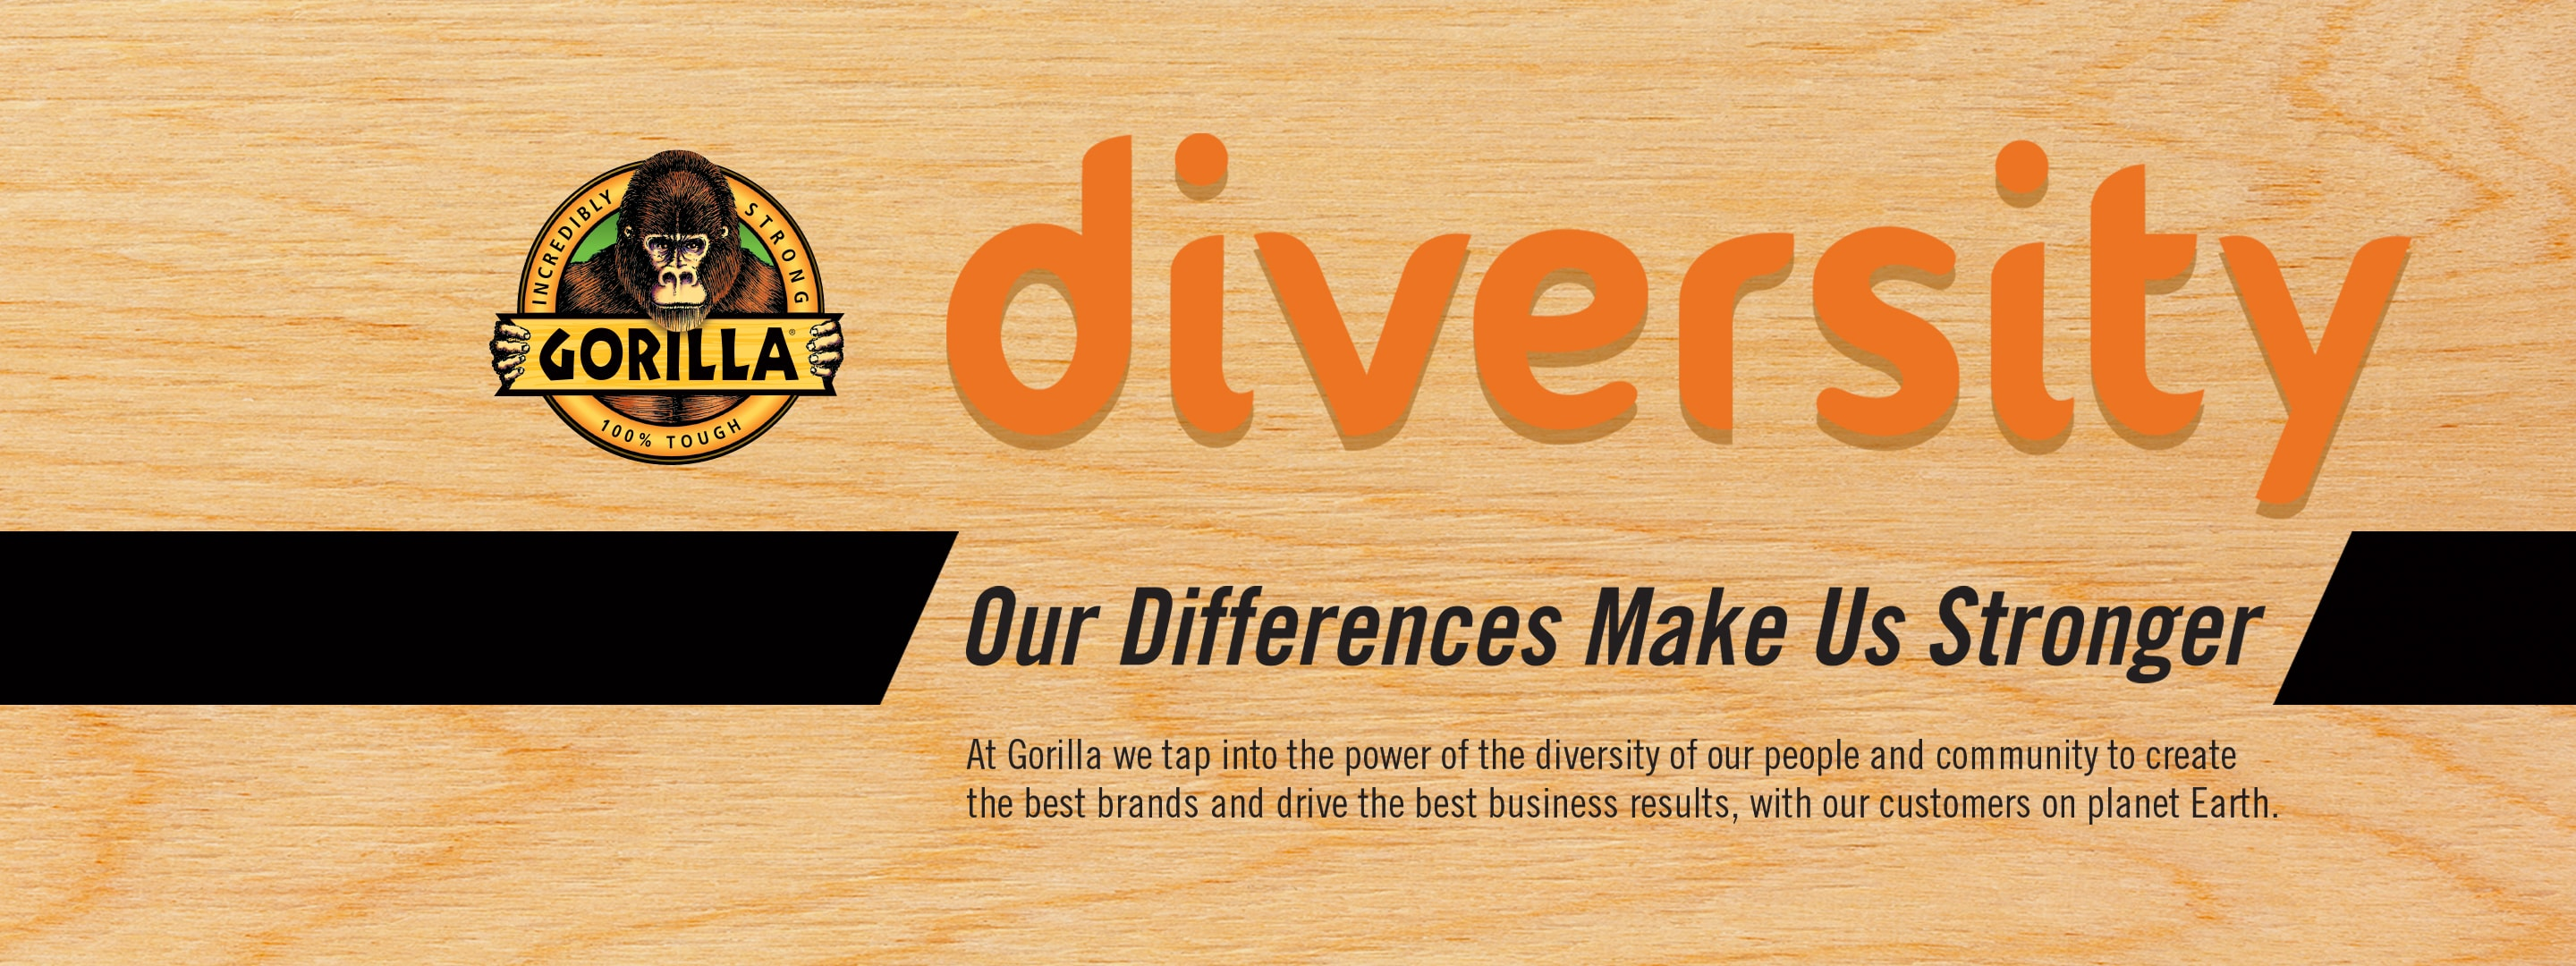 Diversity Our differences make us stronger At Gorilla we tap into the power of the diversity of our people and community to create the best brands and drive the best business results, with our customers on planet Earth.